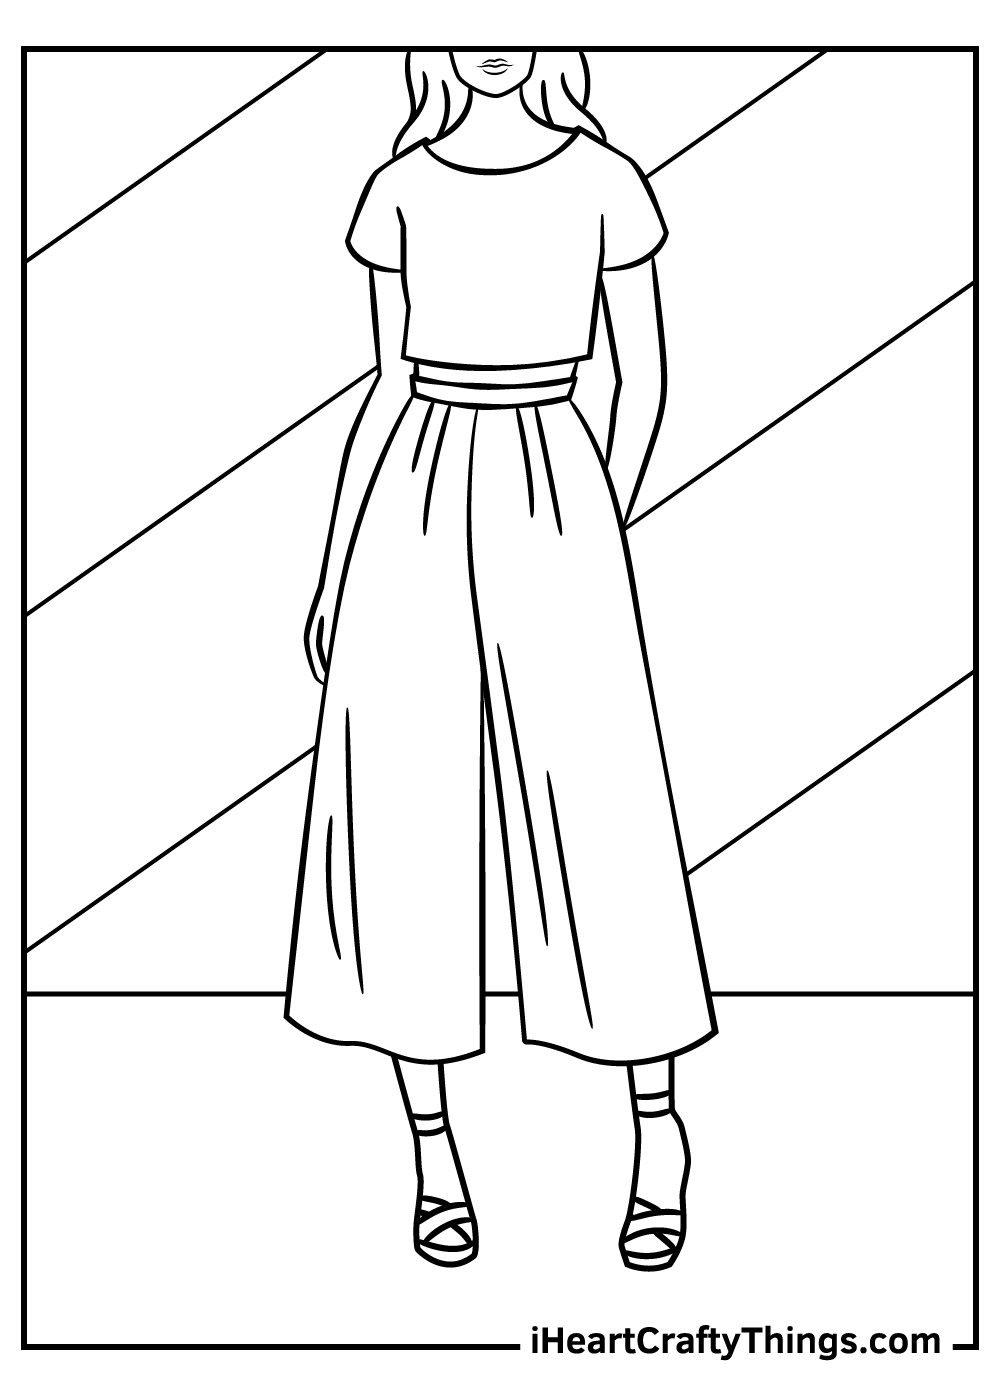 fashion coloring pages for adults free download